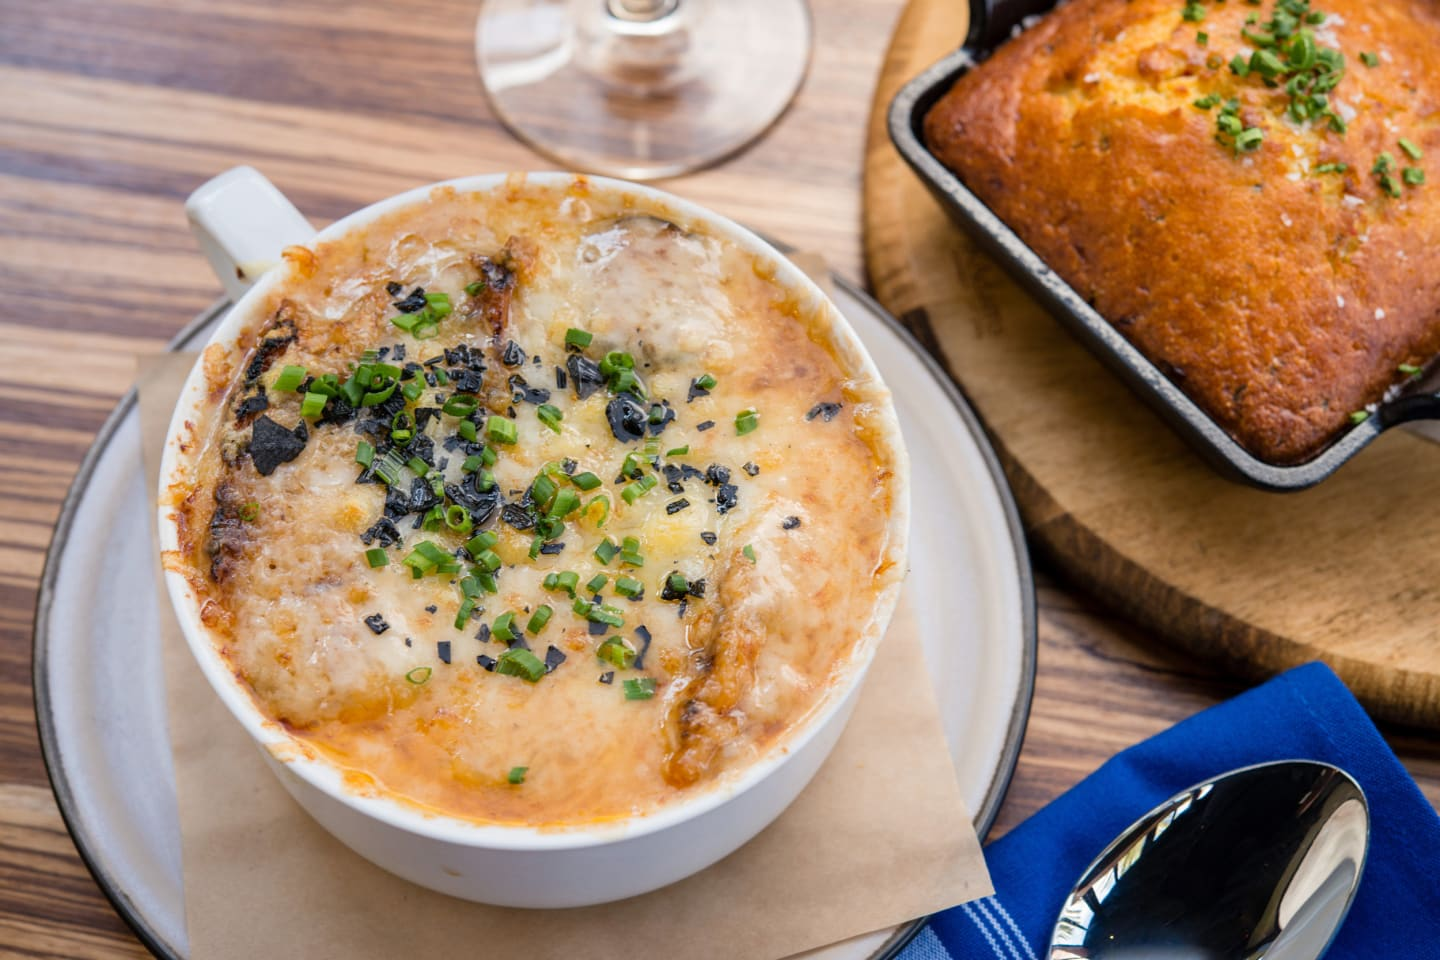 Caramelized Onion Soup